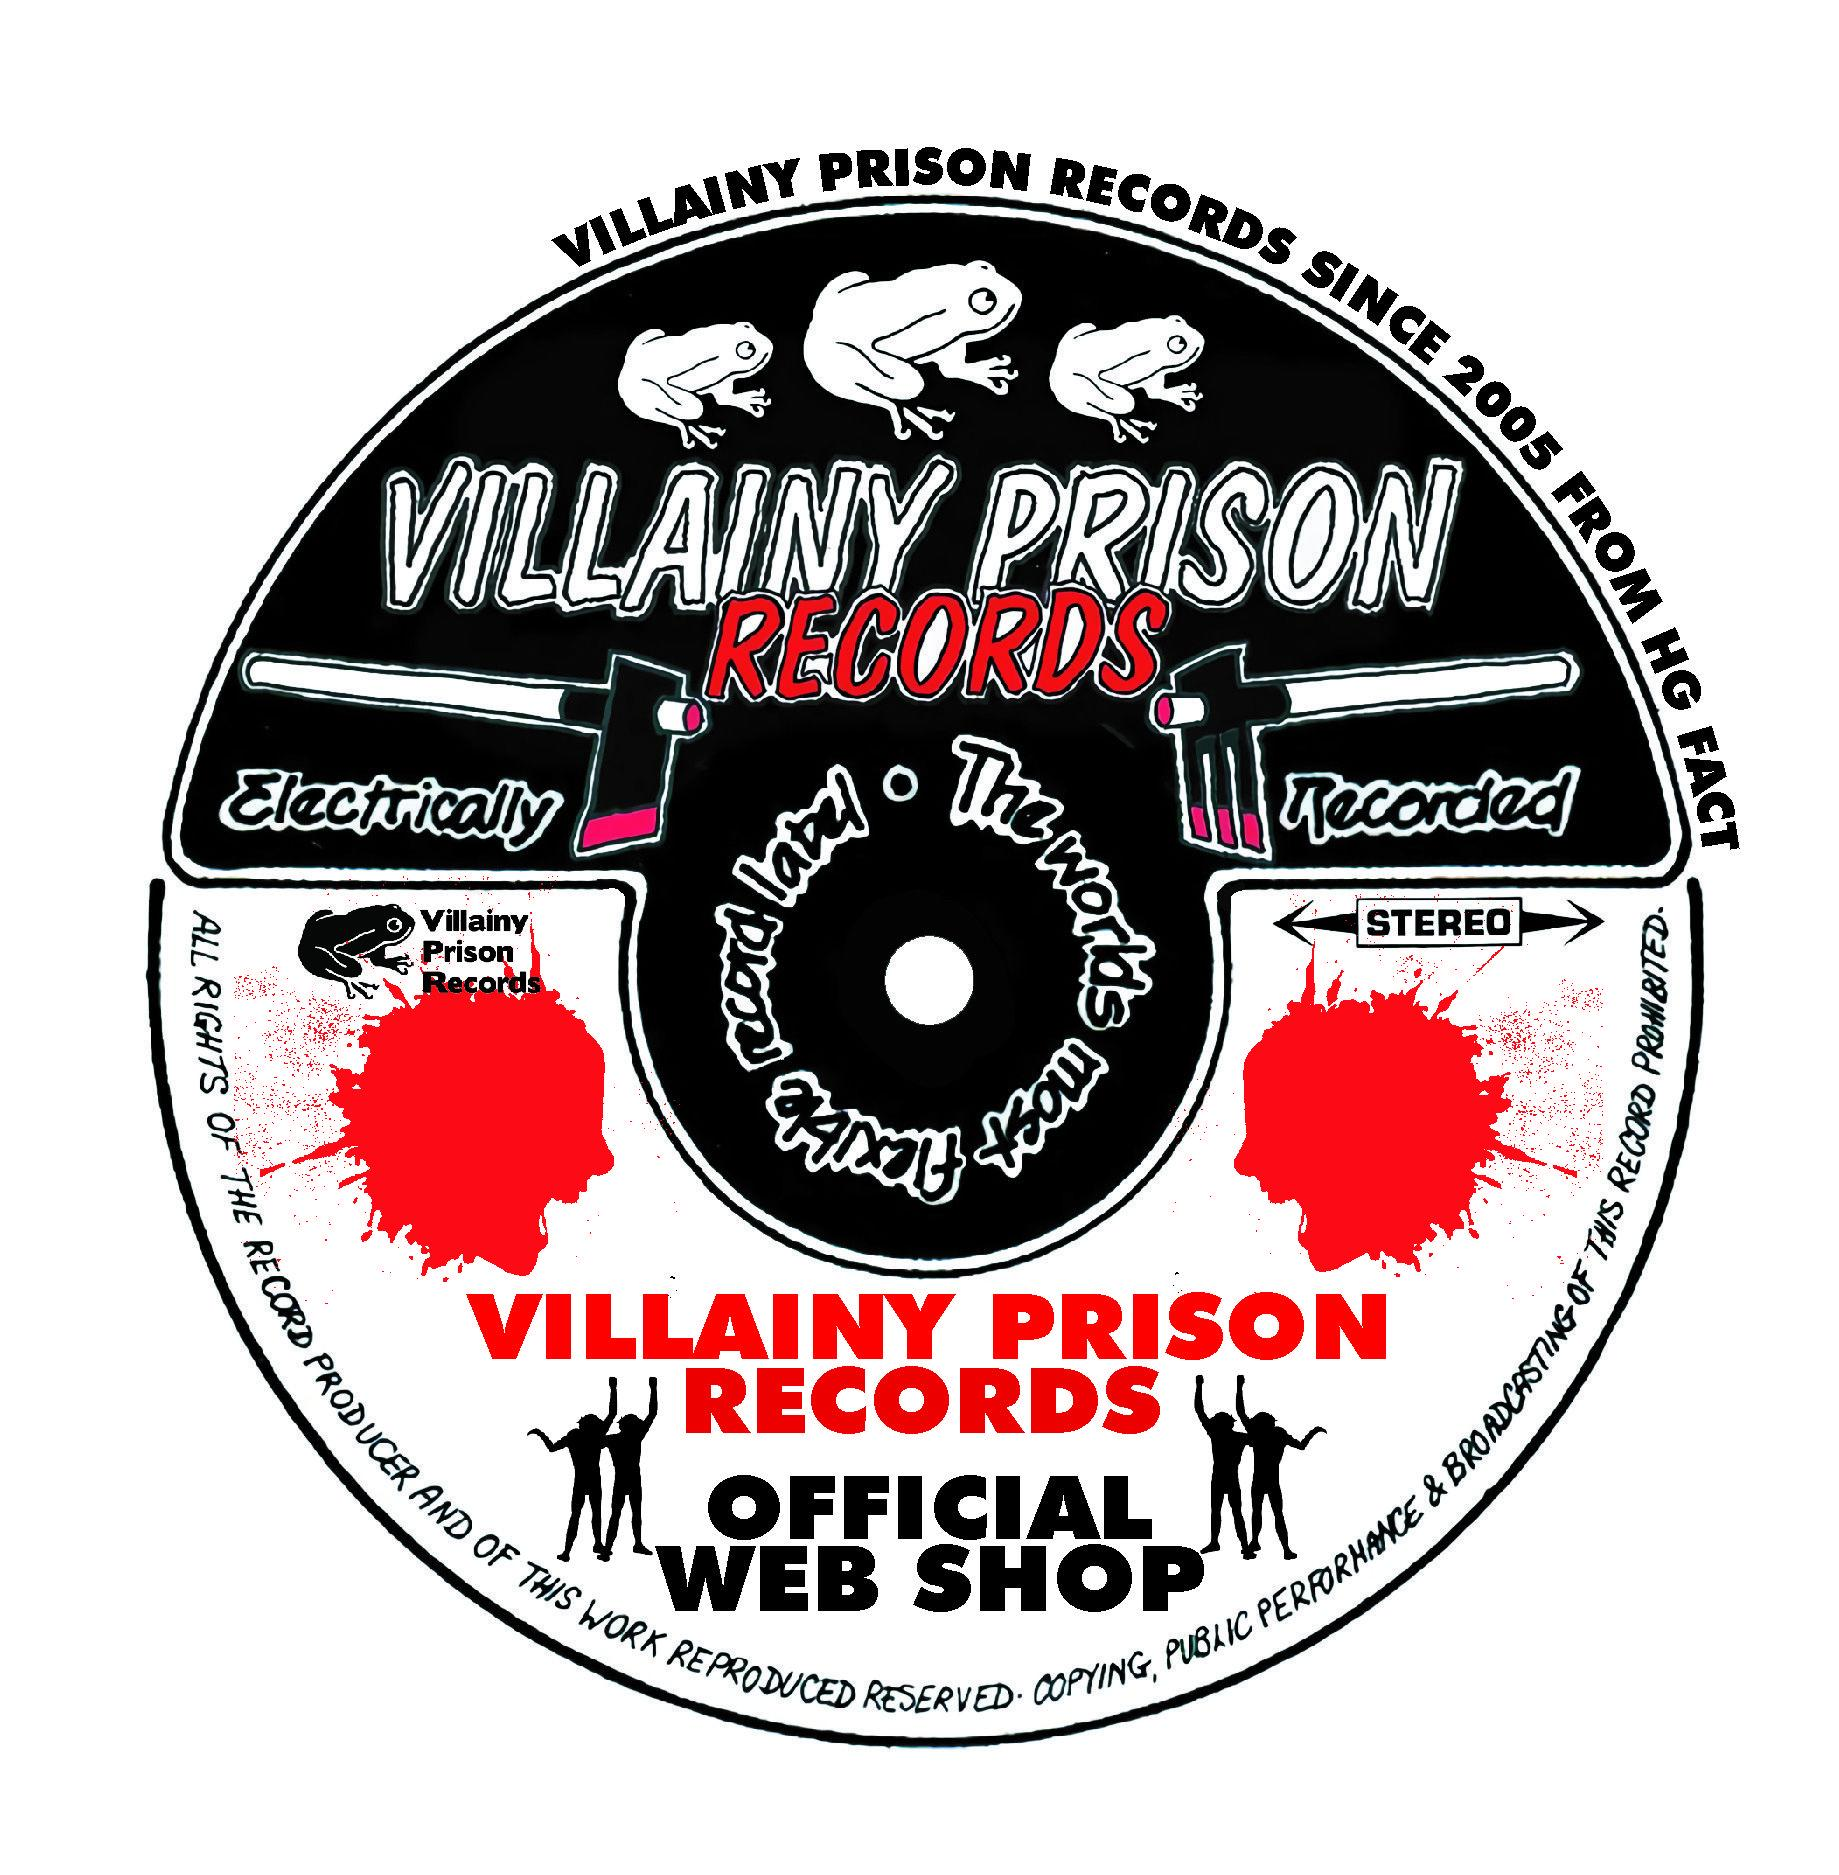 VILLAINY PRISON RECORDS STORE